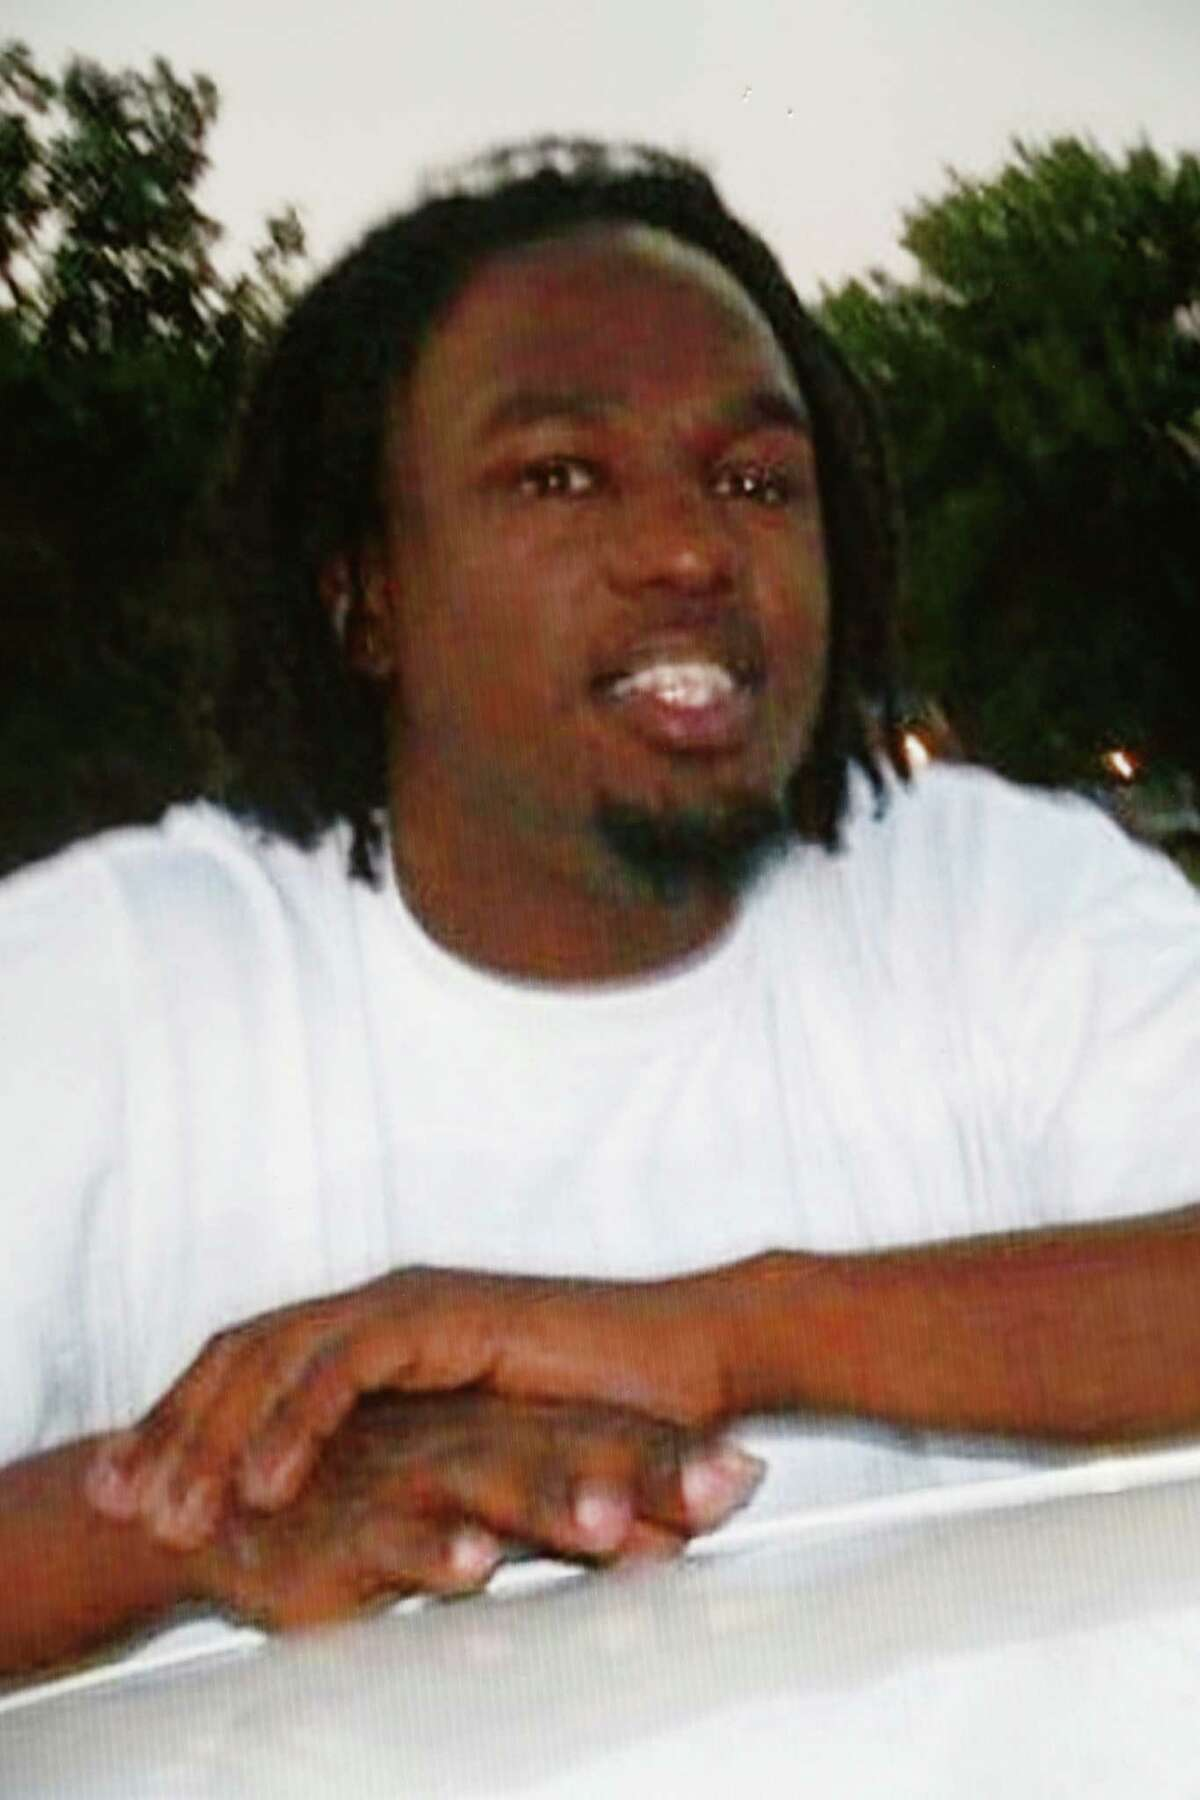 Eric Eugene Pink was 24 when he was shot to death in 2010. His case, assigned to Sgt. Ryan Chandler, remains unsolved.